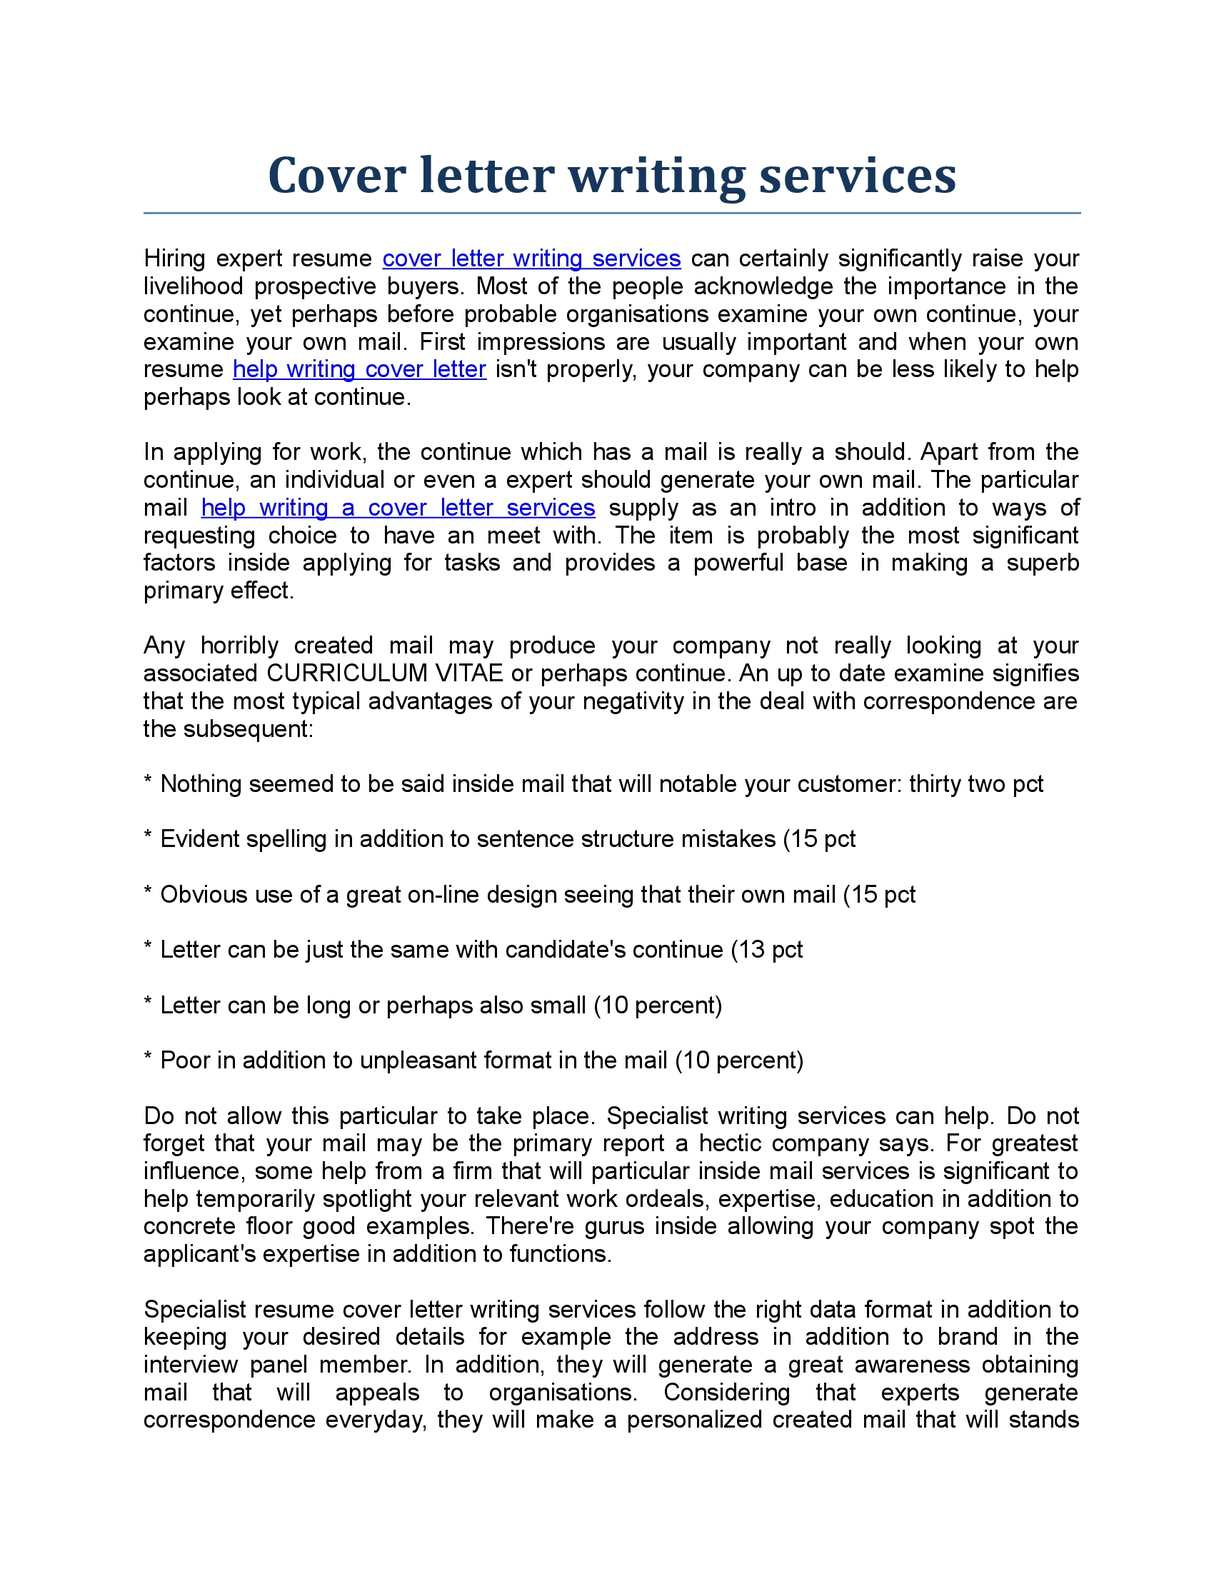 Writing A Cover Letter To A Company Calaméo Cover Letter Writing Services